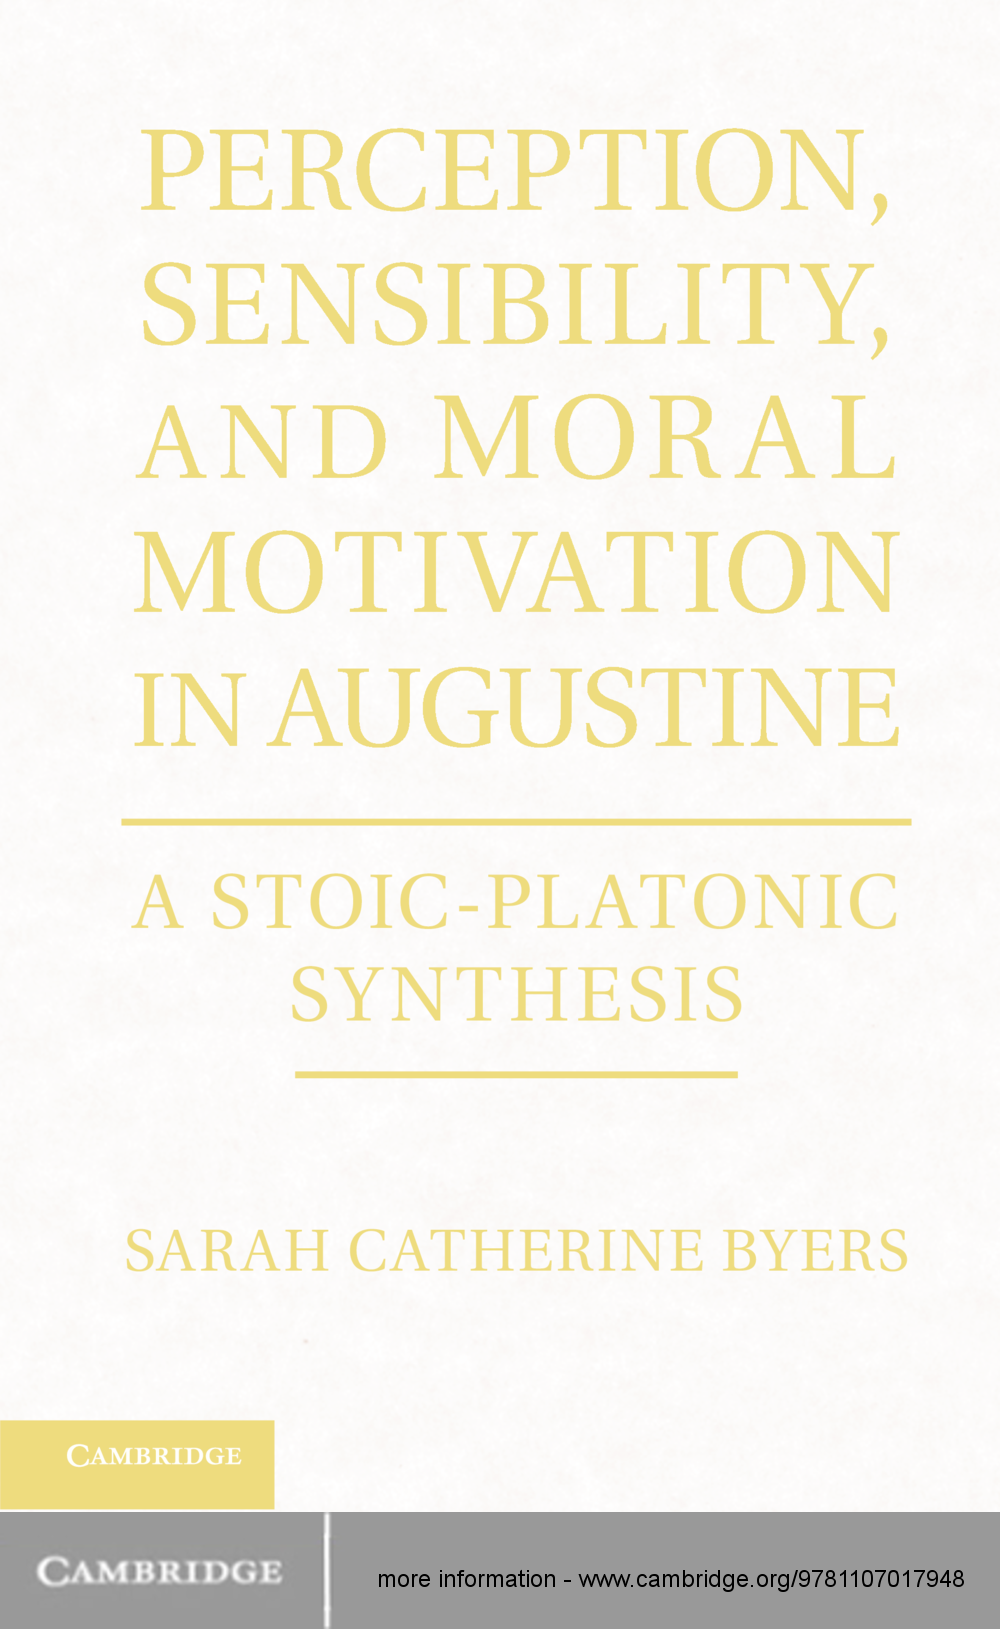 Perception,  Sensibility,  and Moral Motivation in Augustine A Stoic-Platonic Synthesis